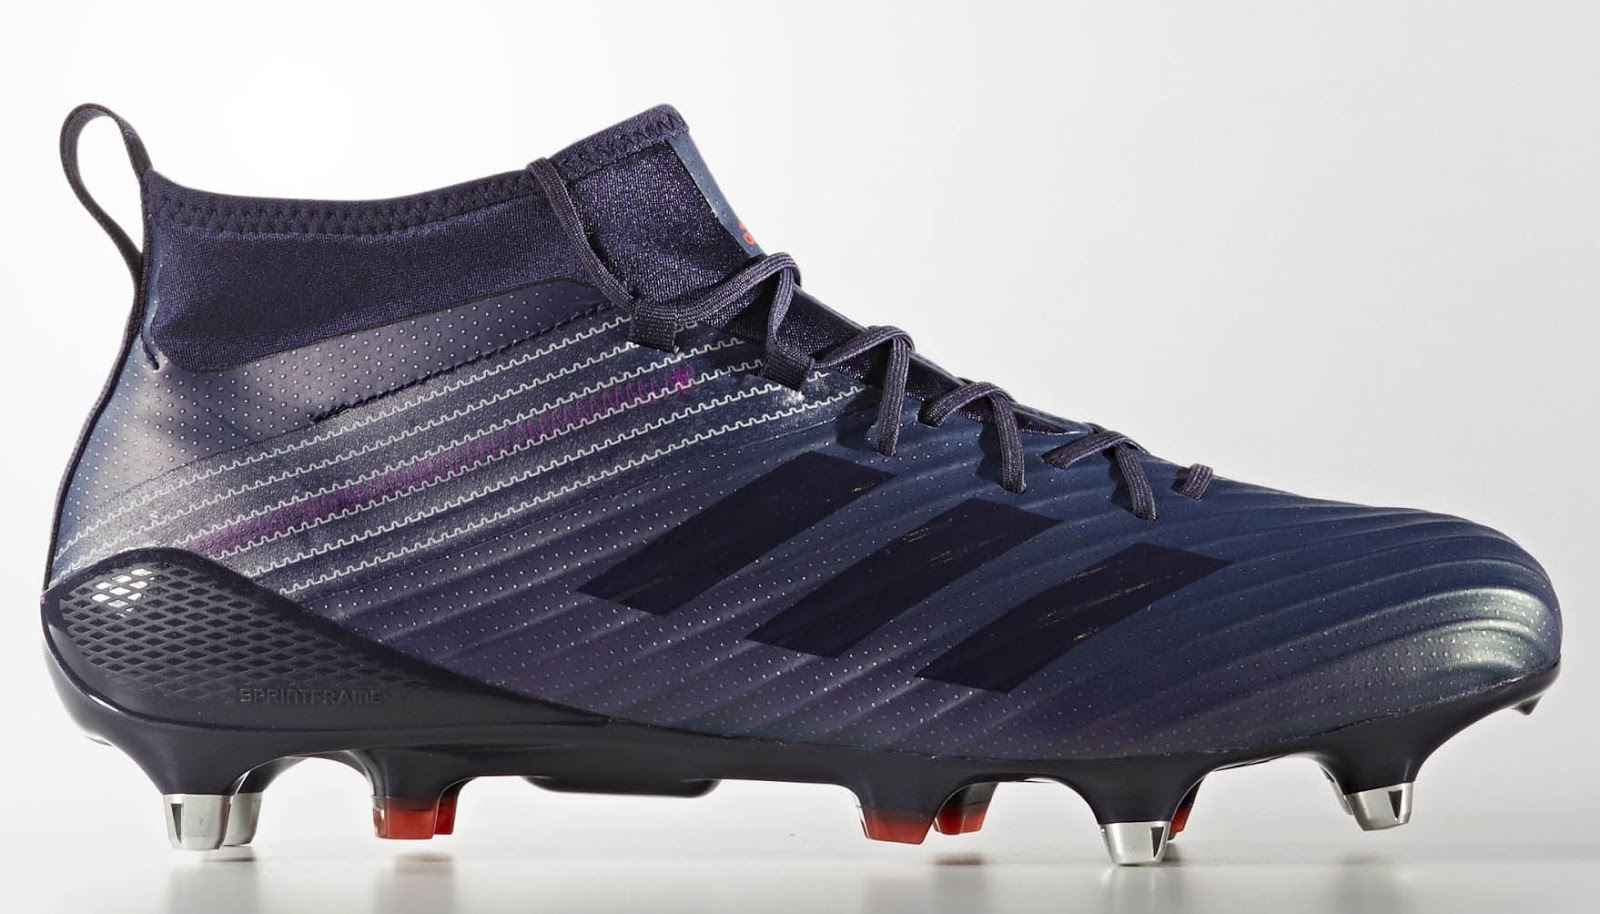 455bc1cca33e ... soft ground rugby boots black f89ca 74336 france predator flare boots  adidas released so far. 2 cf8cc 0e16c low cost ...